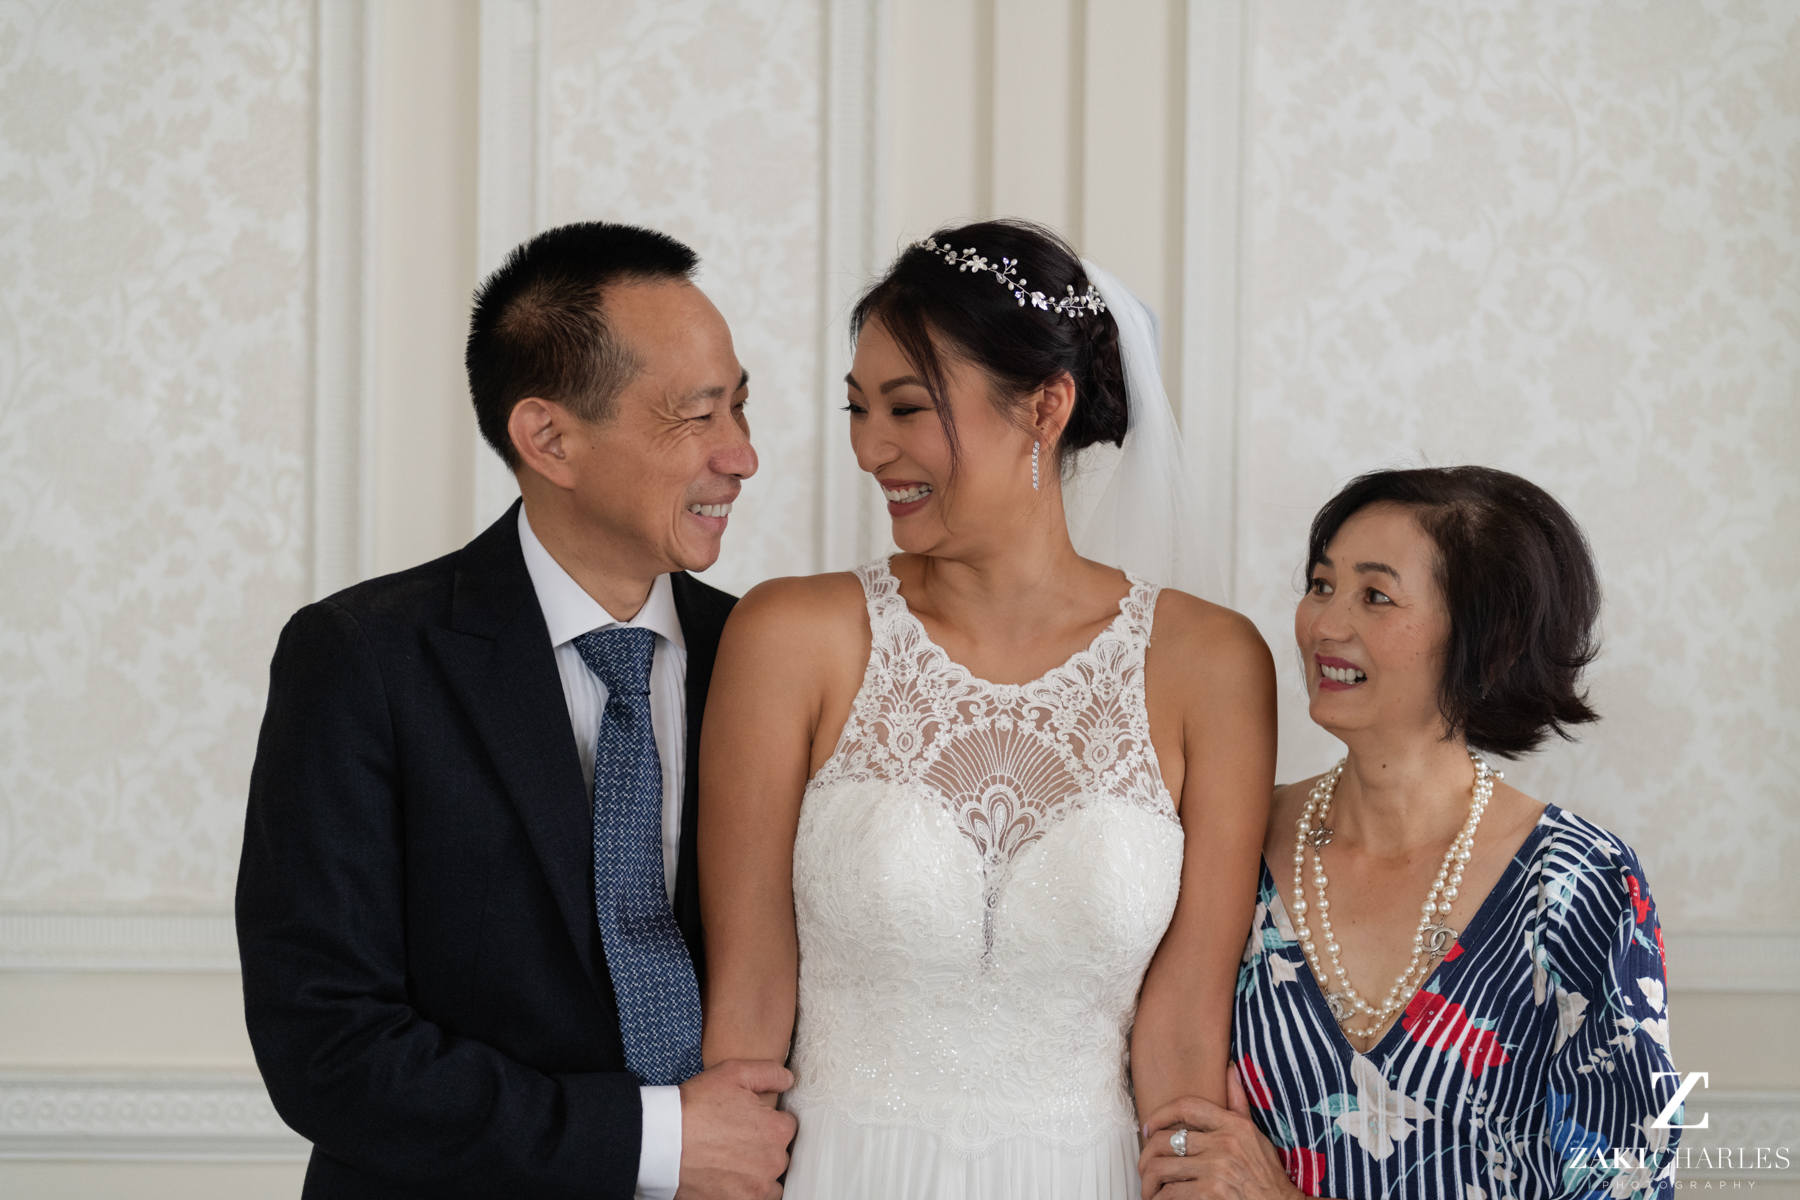 First look with brides parents 11